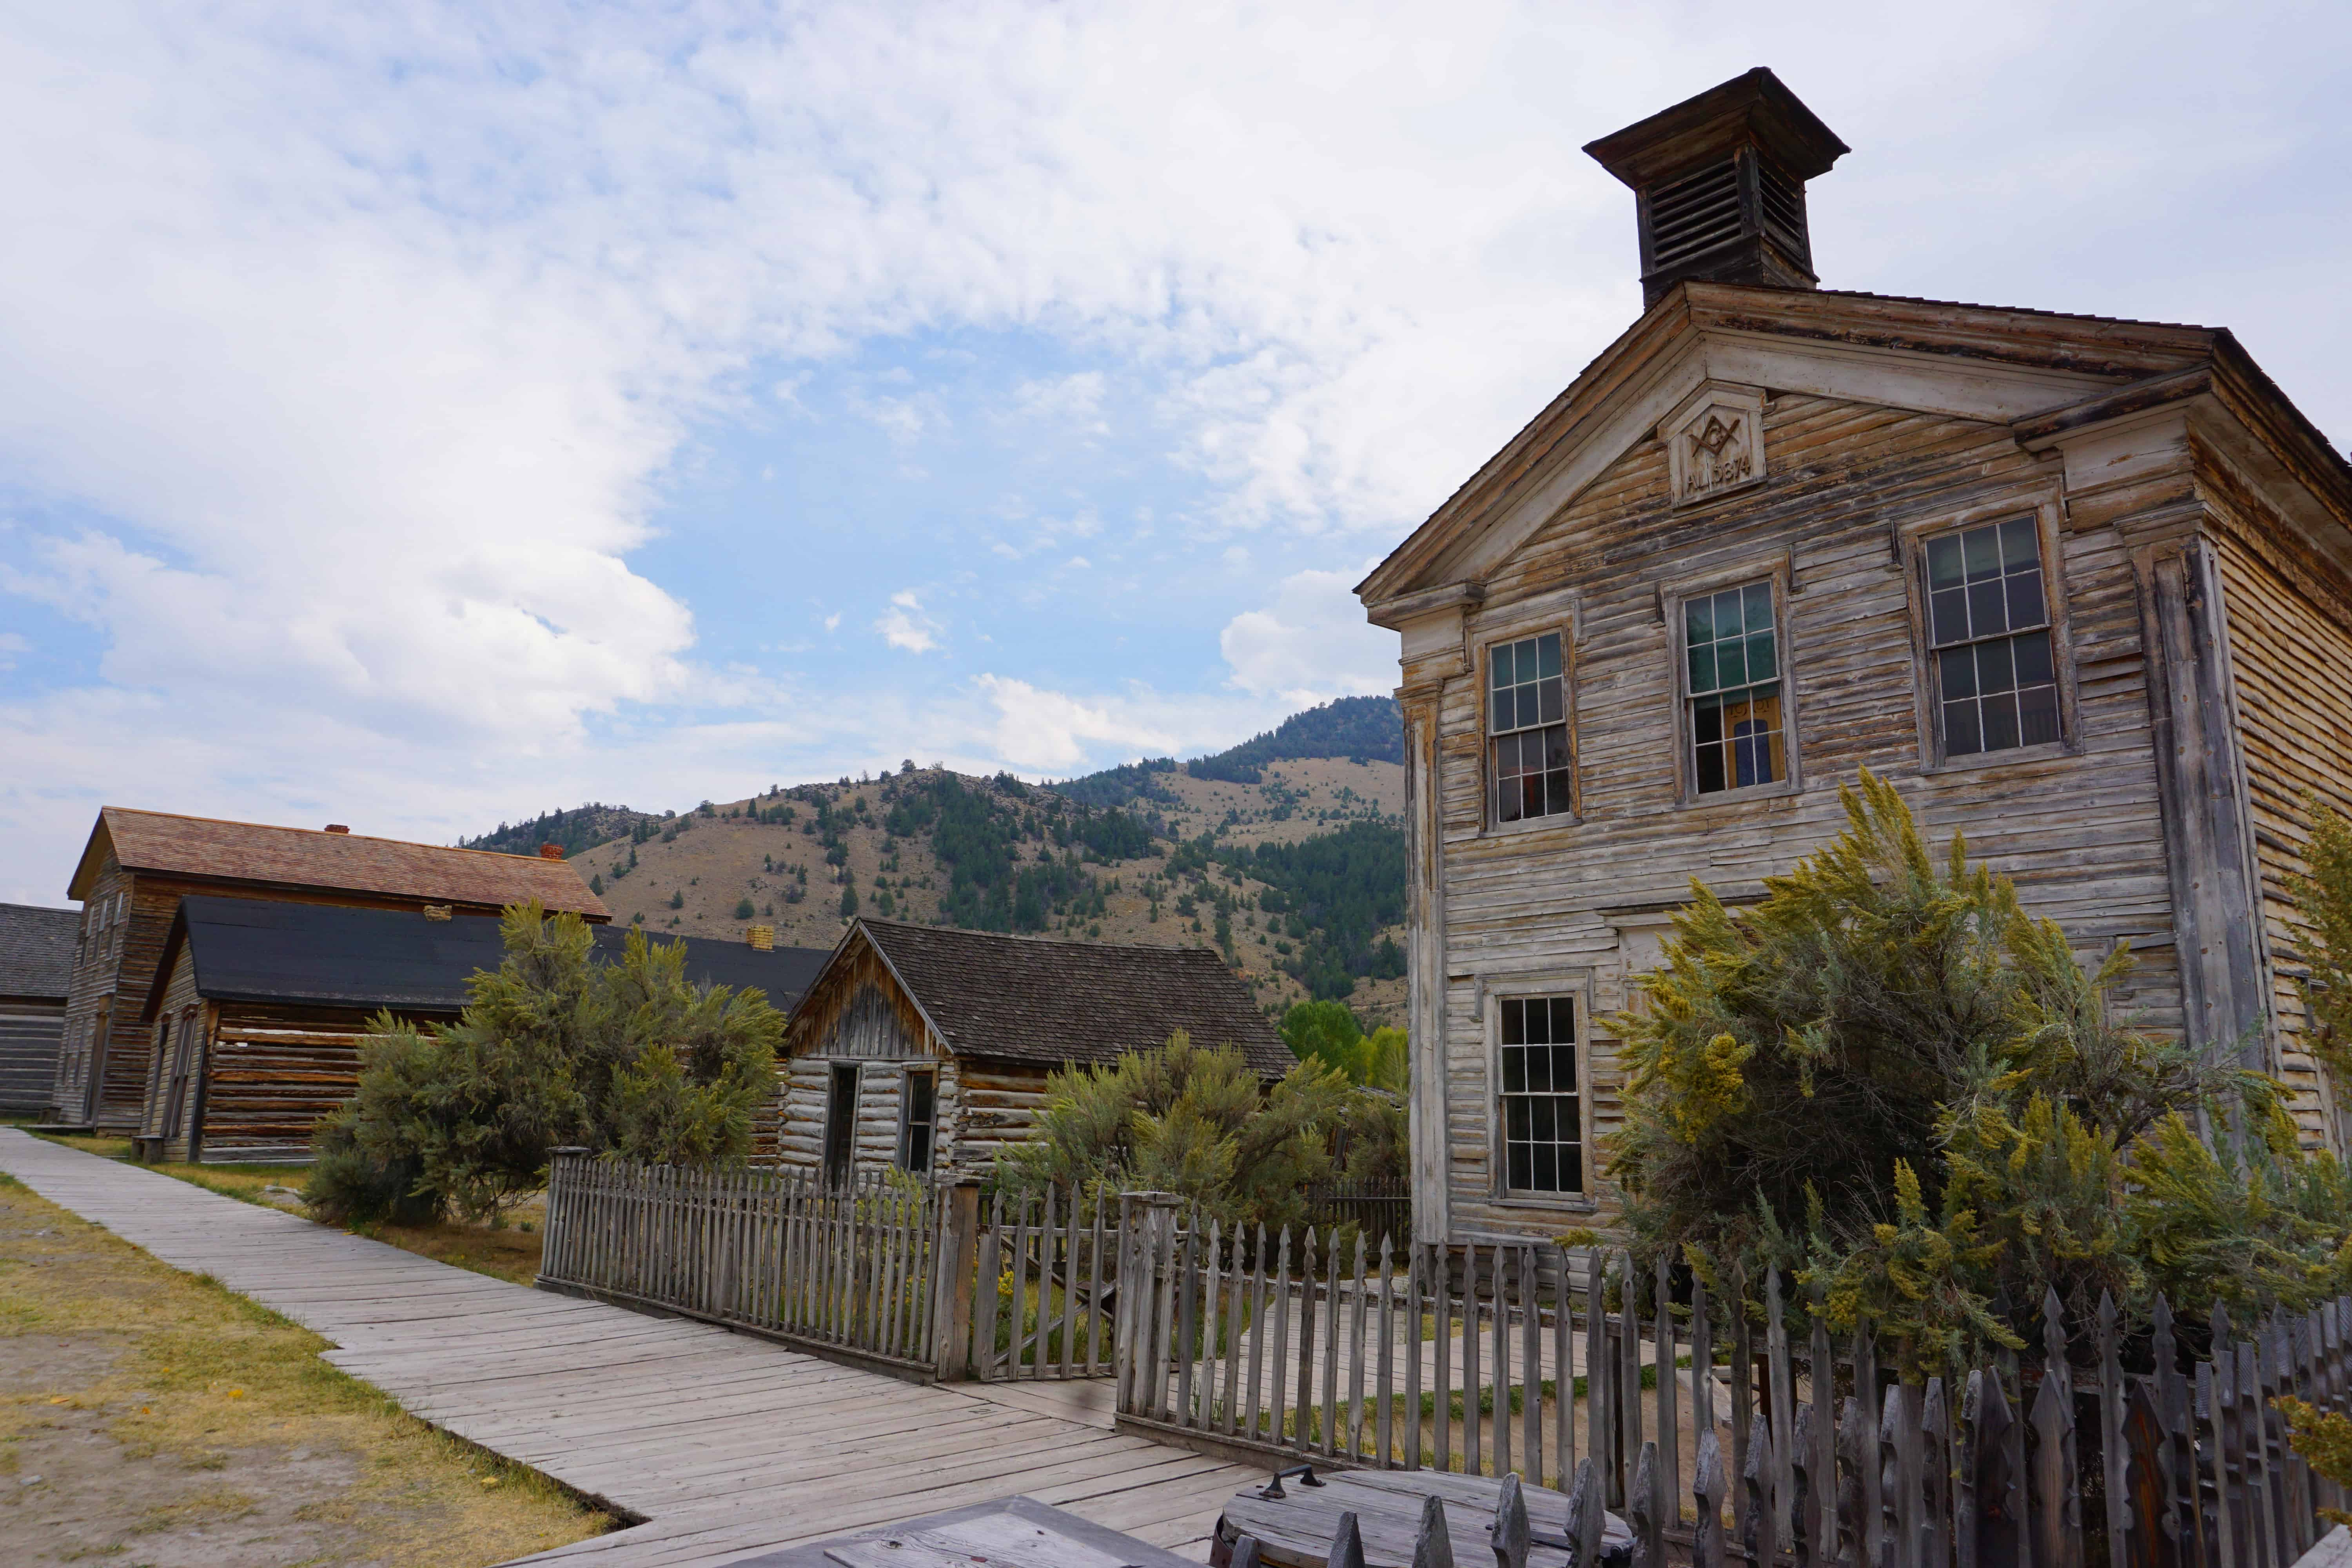 The mining ghost town of bannack state park in montana - Towne place at garden state park ...